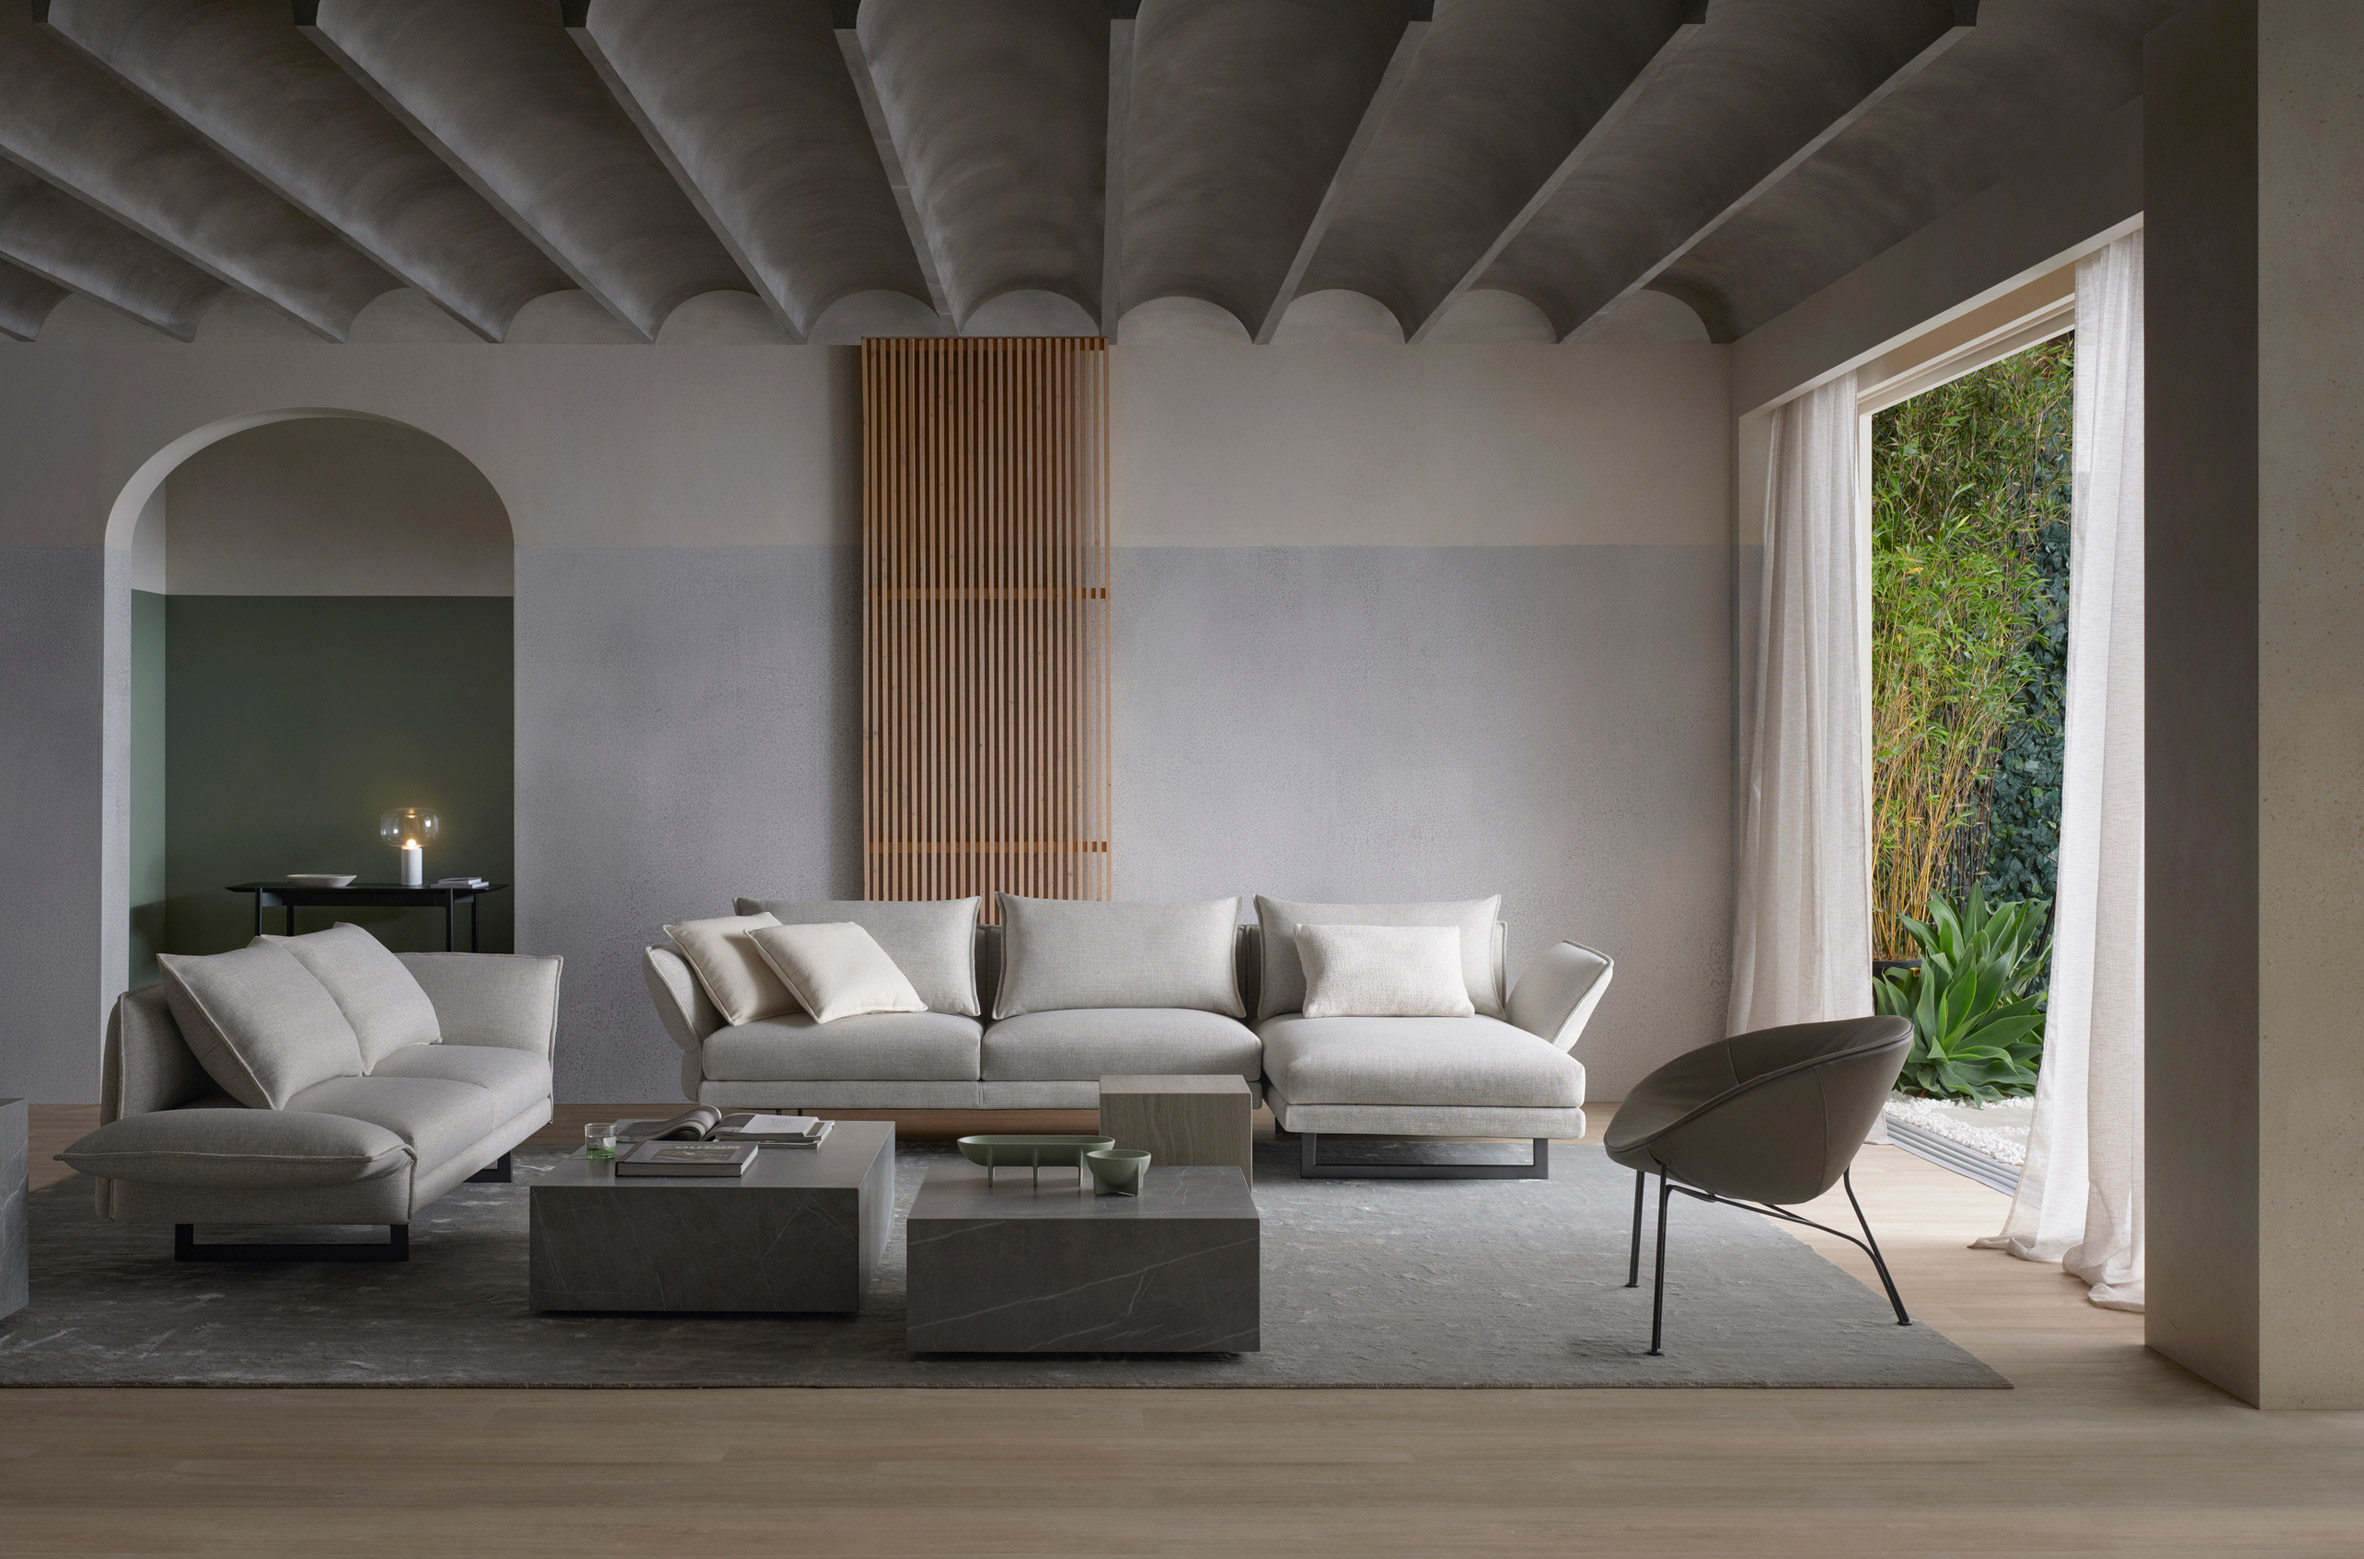 Zaza outdoor sofa by Charles Wilson for King